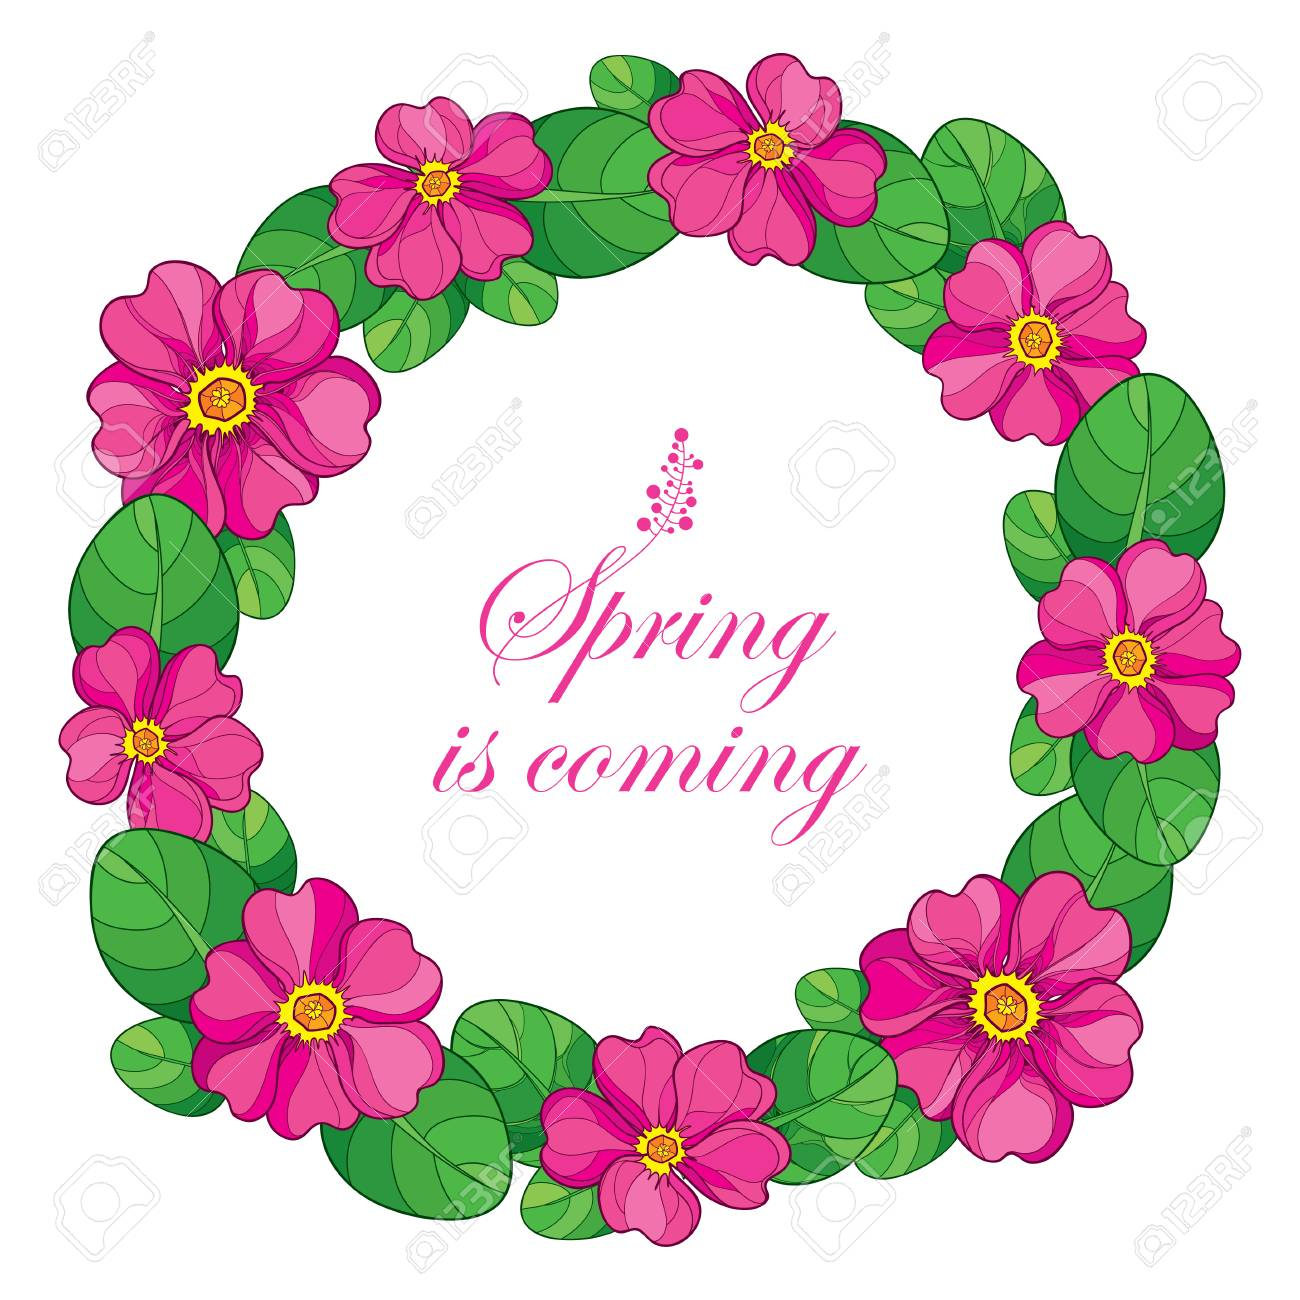 Round wreath with outline pink primula or primrose flower and round wreath with outline pink primula or primrose flower and green leaves on white background mightylinksfo